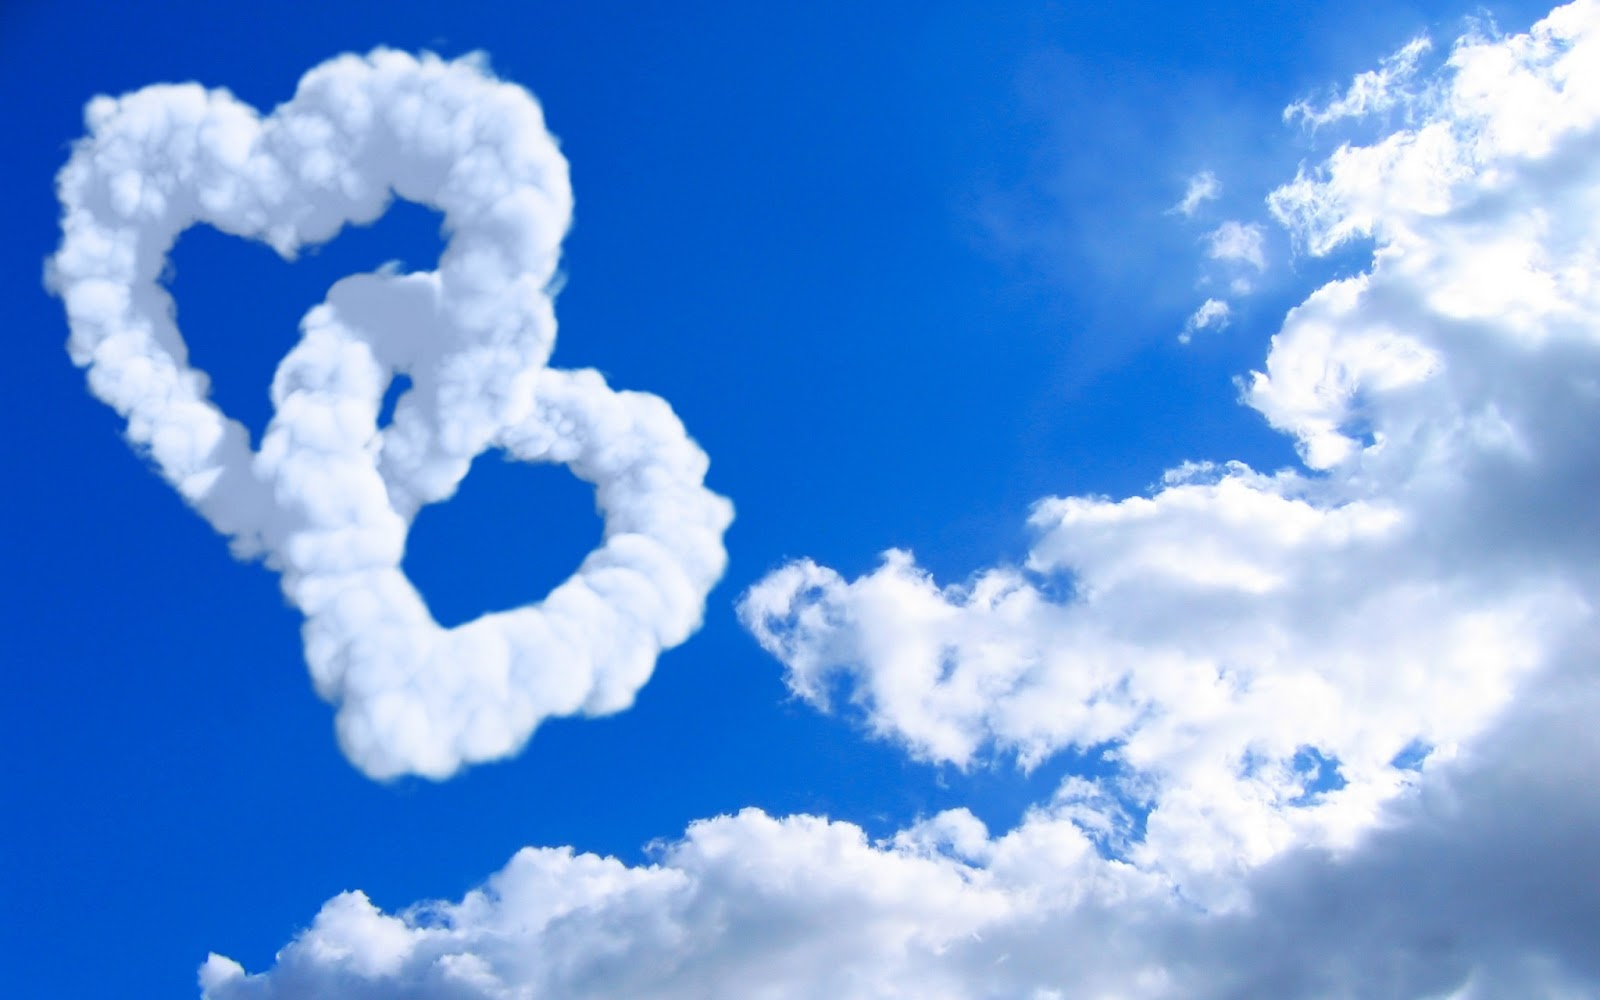 Free Wallpaper Dekstop: 3d love with clouds wallpaper, wallpaper for desktop